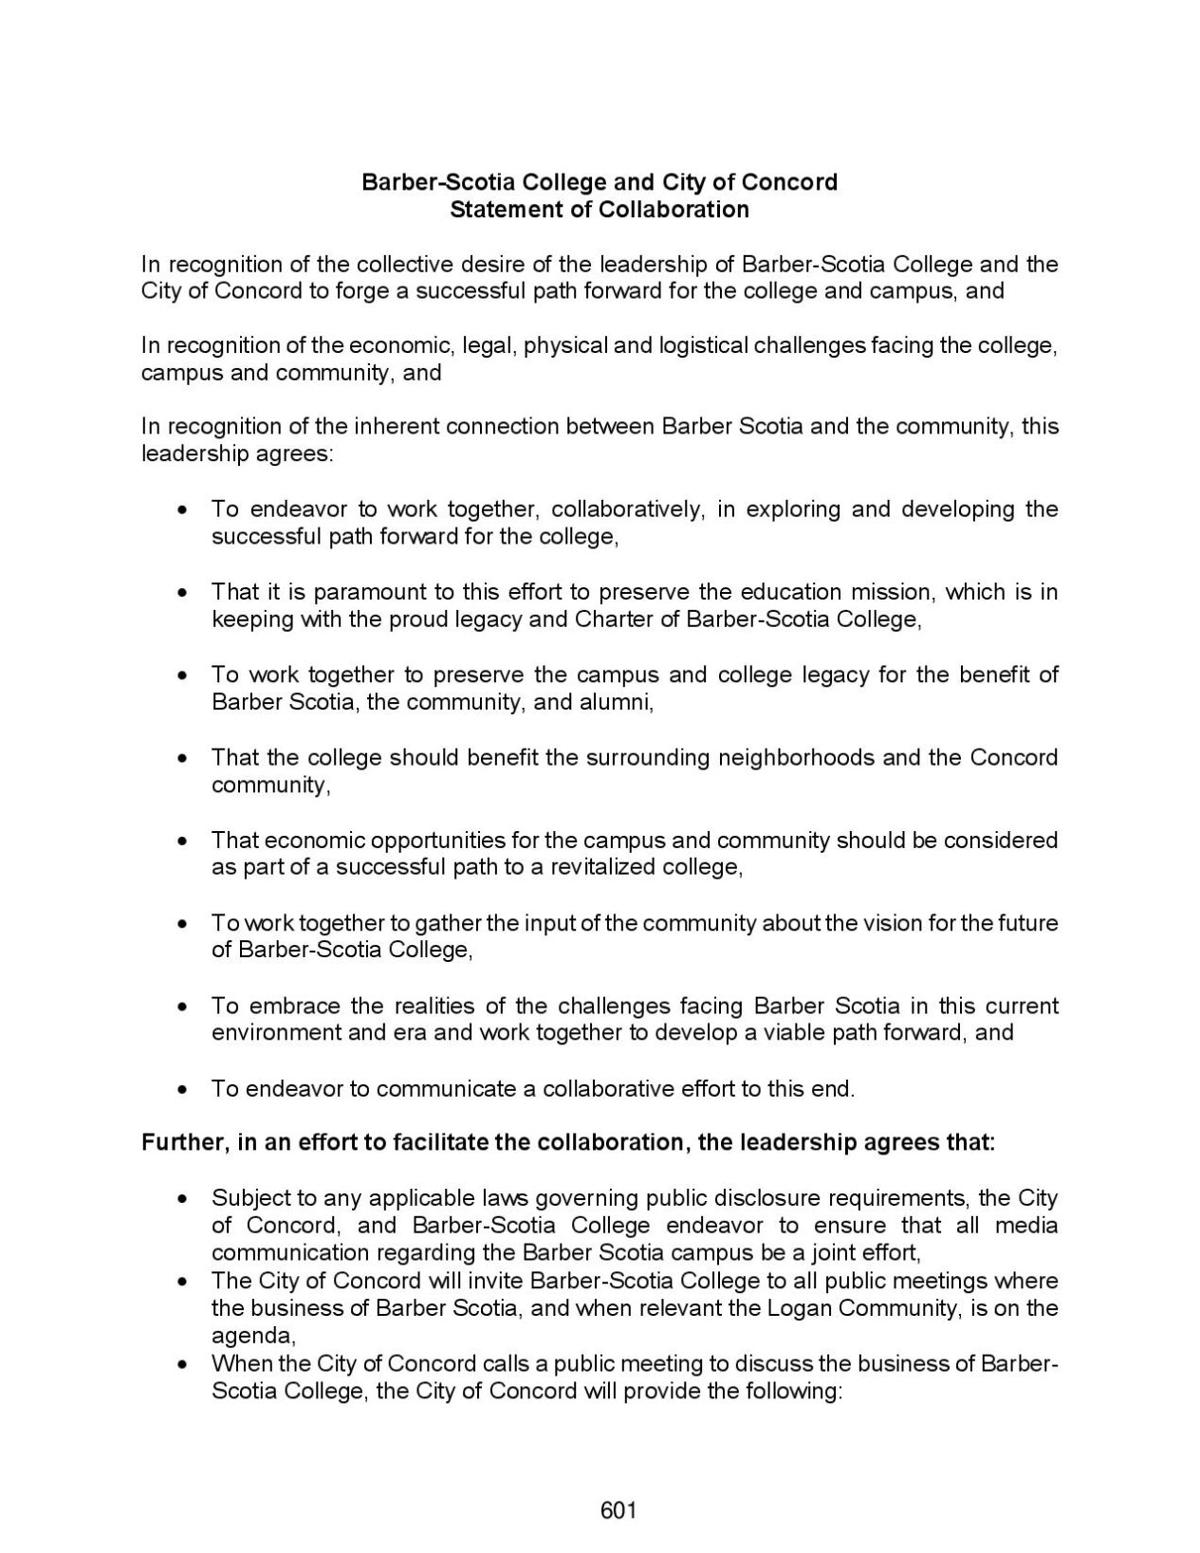 Barber-Scotia Agreement Page 1